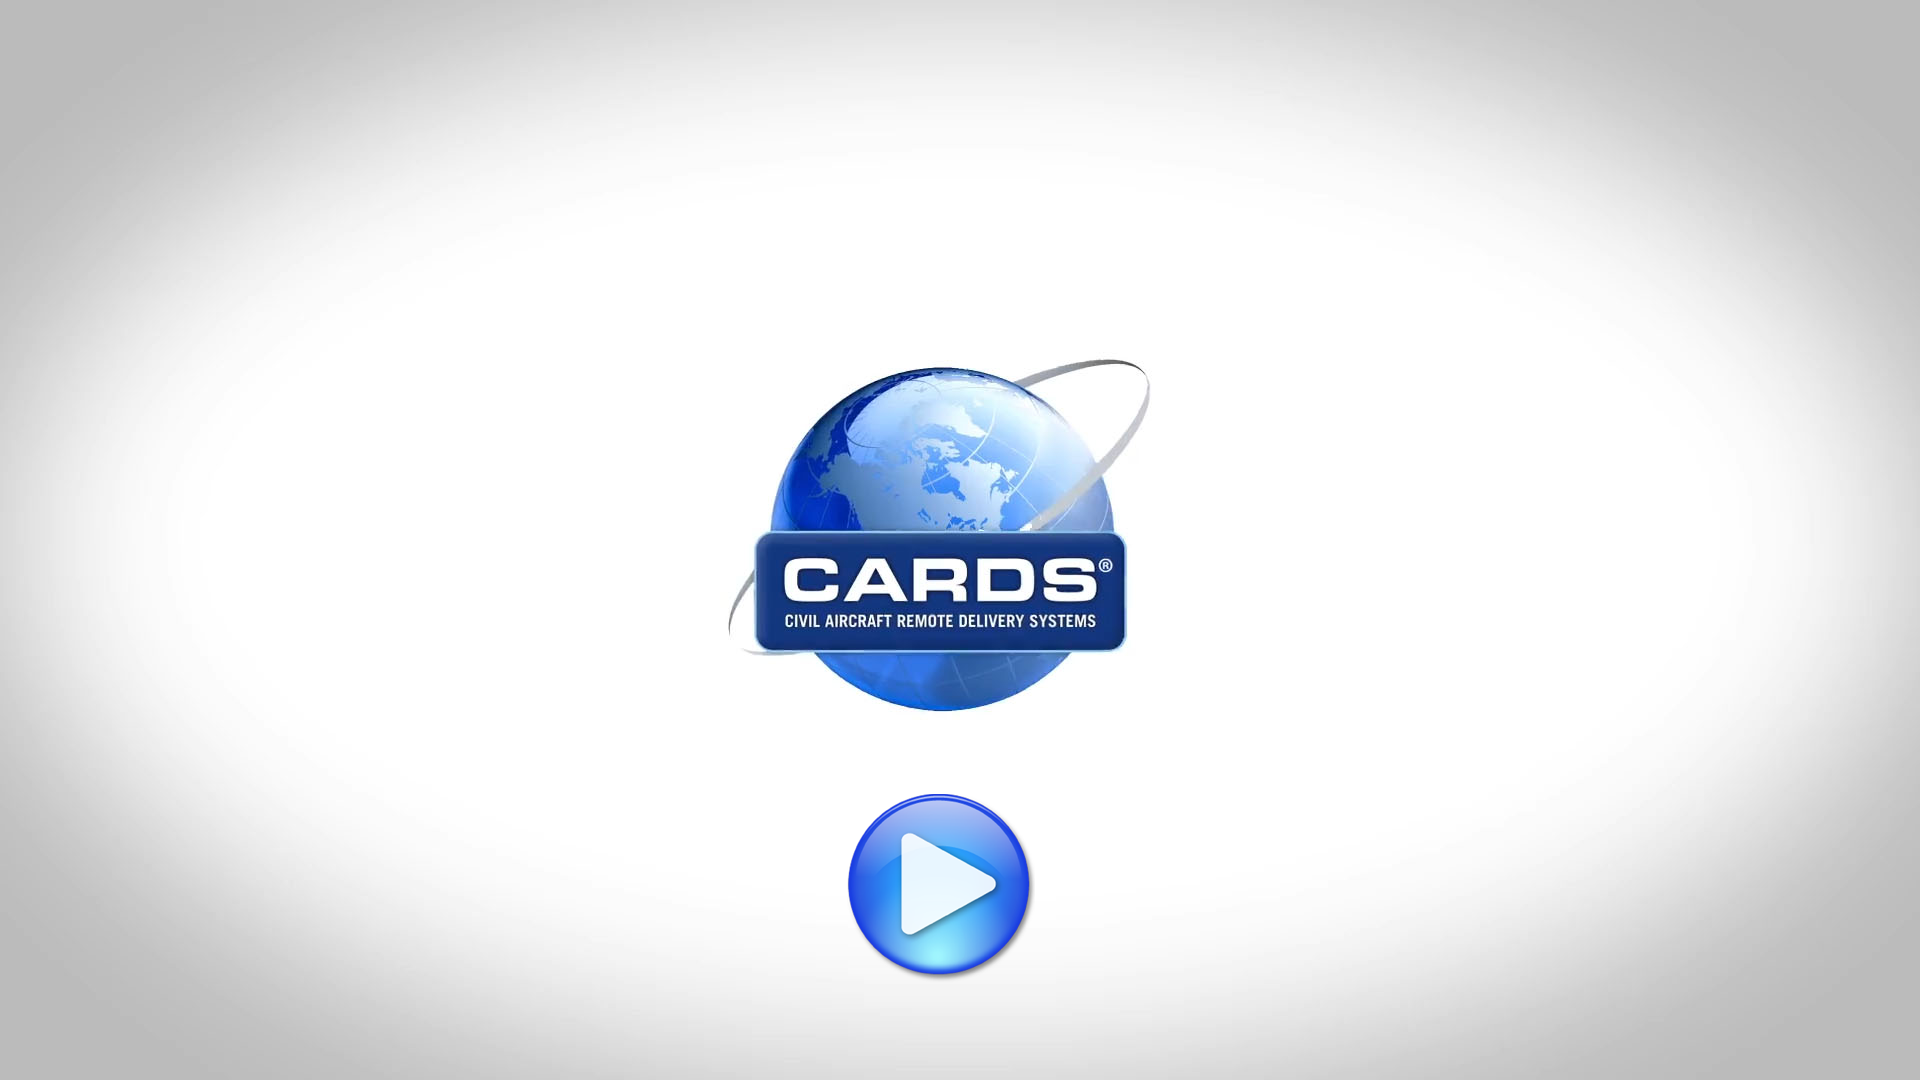 CARDS VIDEO